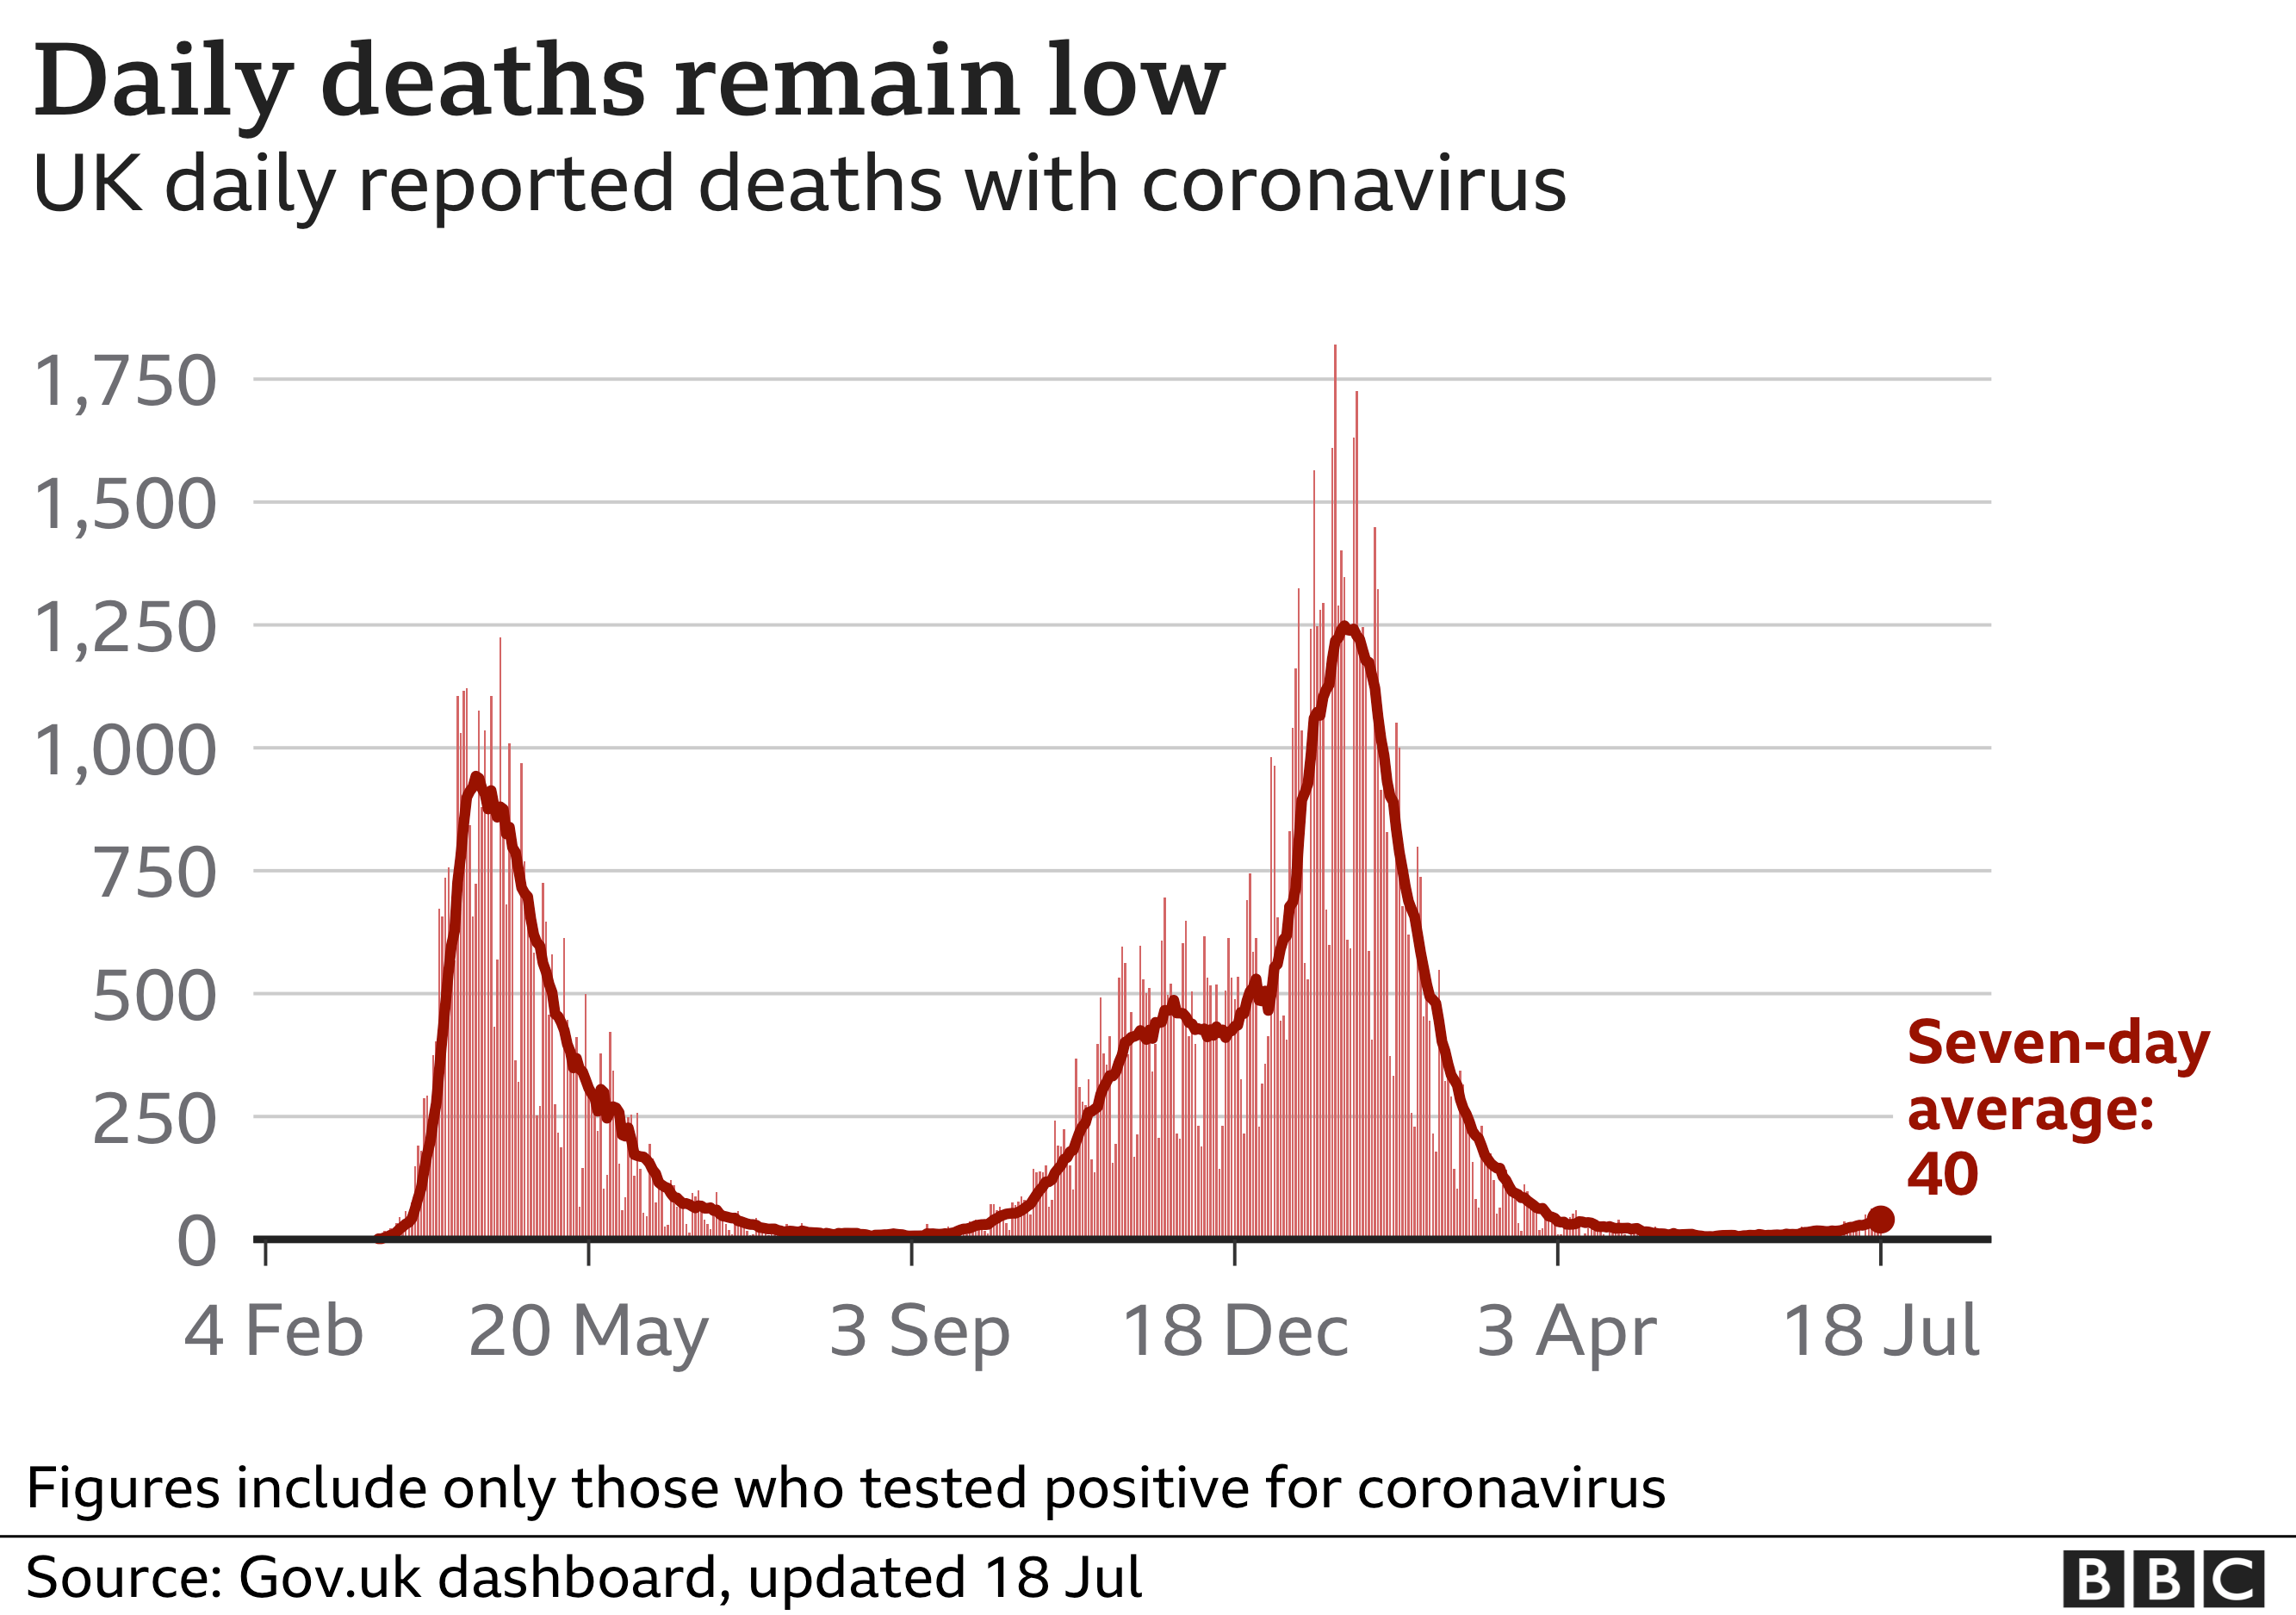 Chart showing that the number of daily Covid deaths remains low